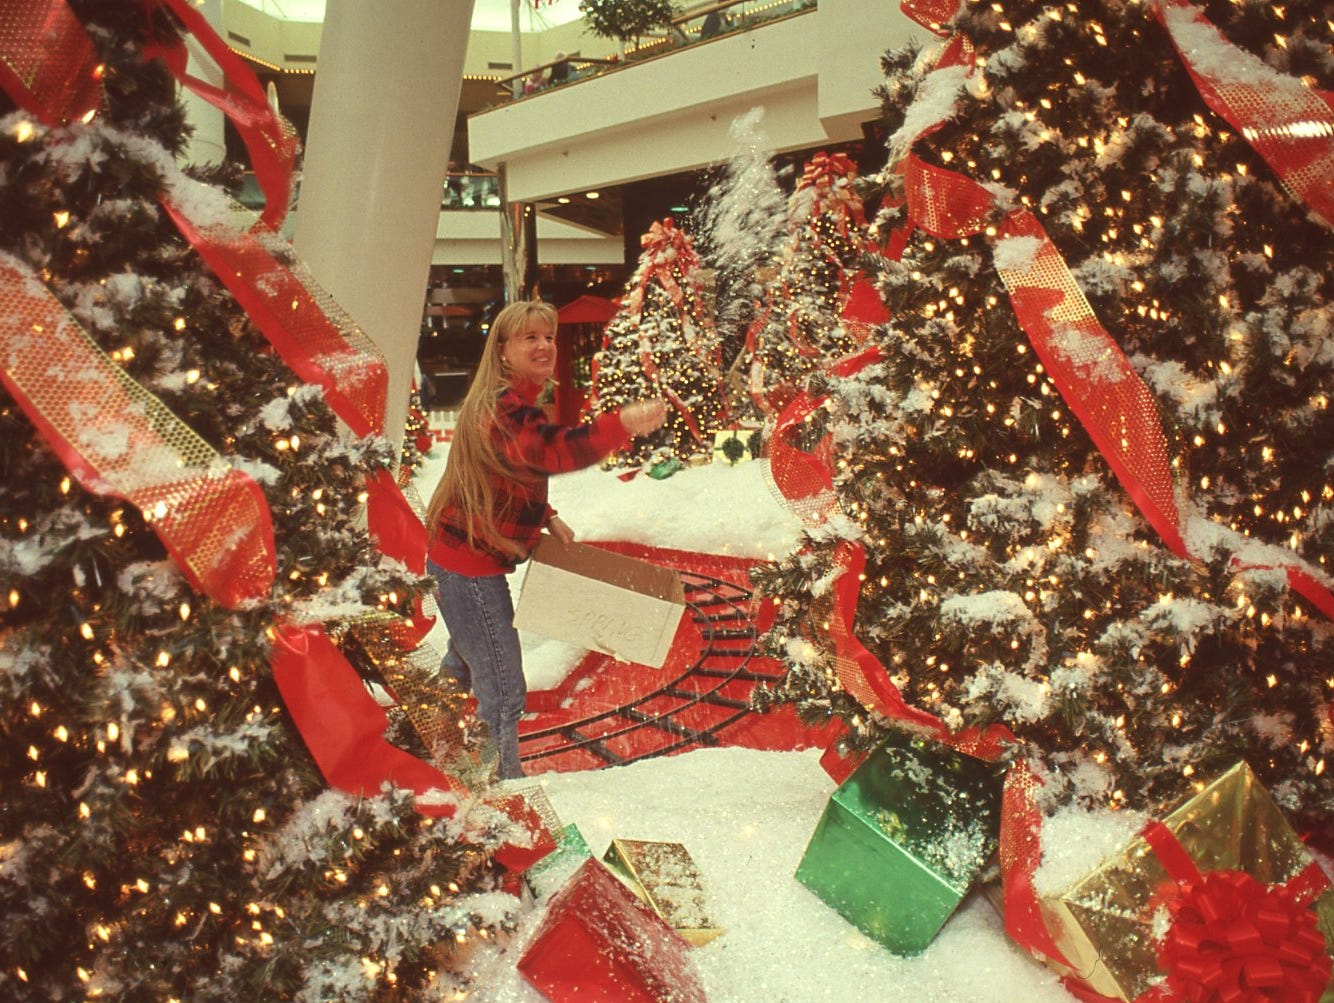 Dinah Vann, marketing assistant at East Towne Mall, throws fake snow to touch up the decorated Christmas trees in the mall, November, 1995.